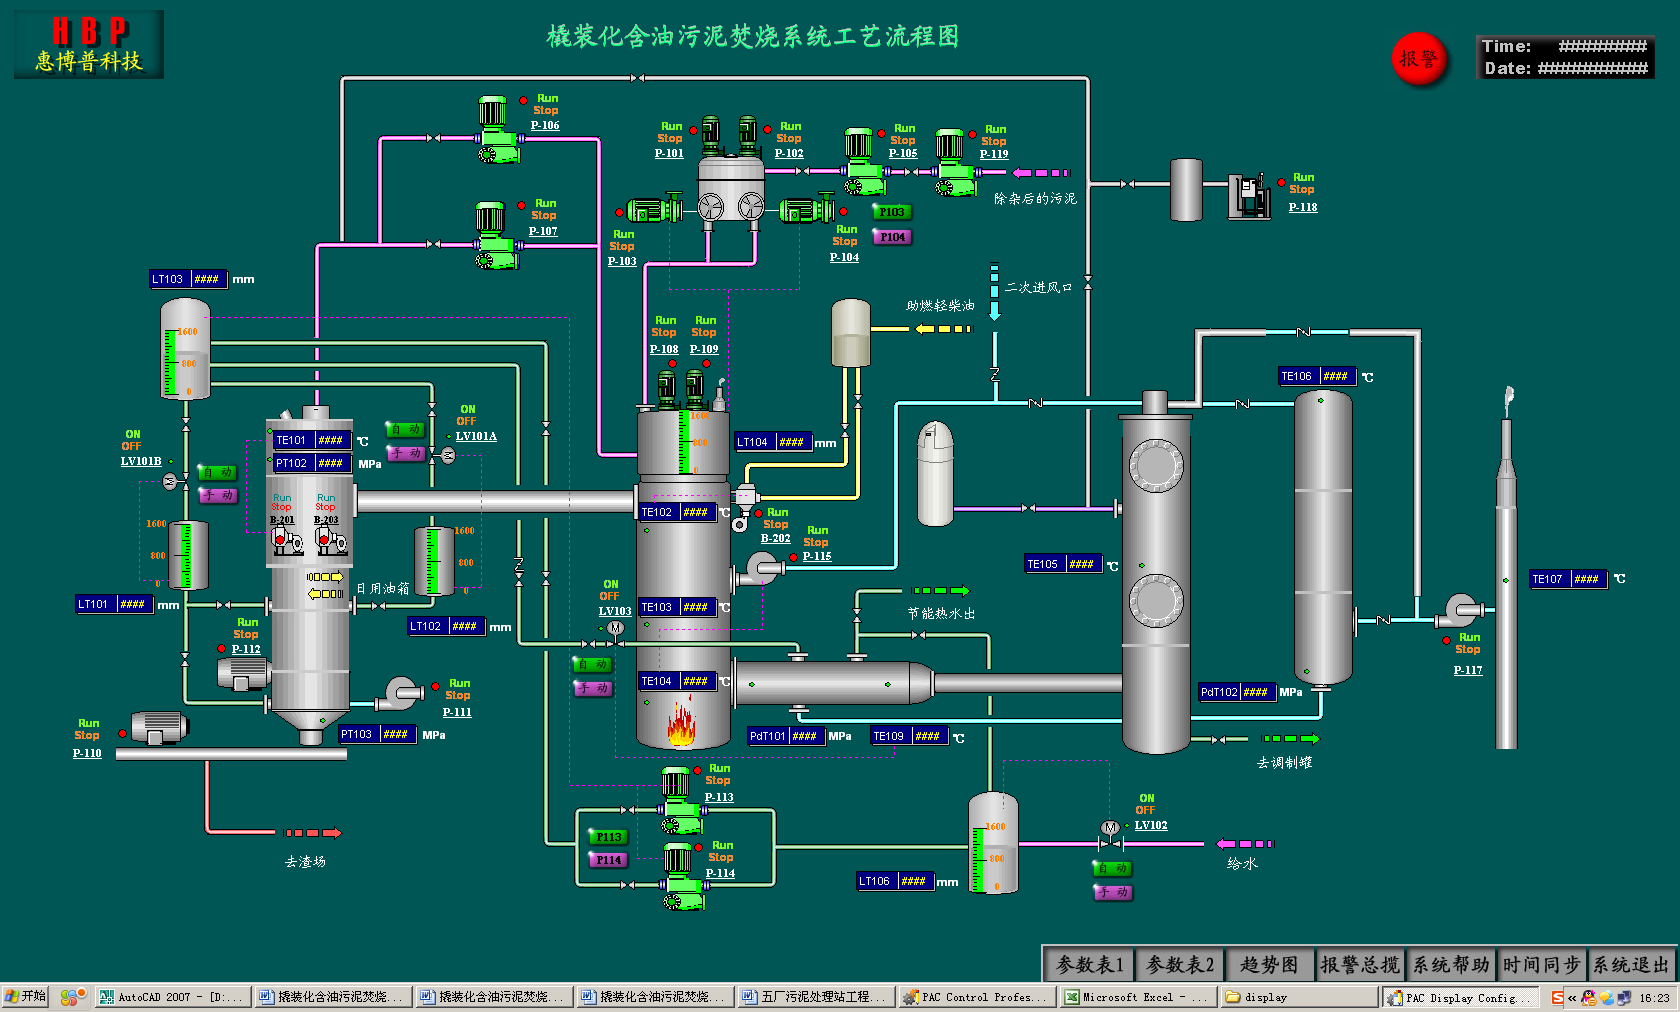 Hbp Scada System Integration For Oil Gas Storage And Transportation Tank Schematic Mechanical Cleaning Device Oily Sludge Treatment Incineration Alkali Liquor Blending